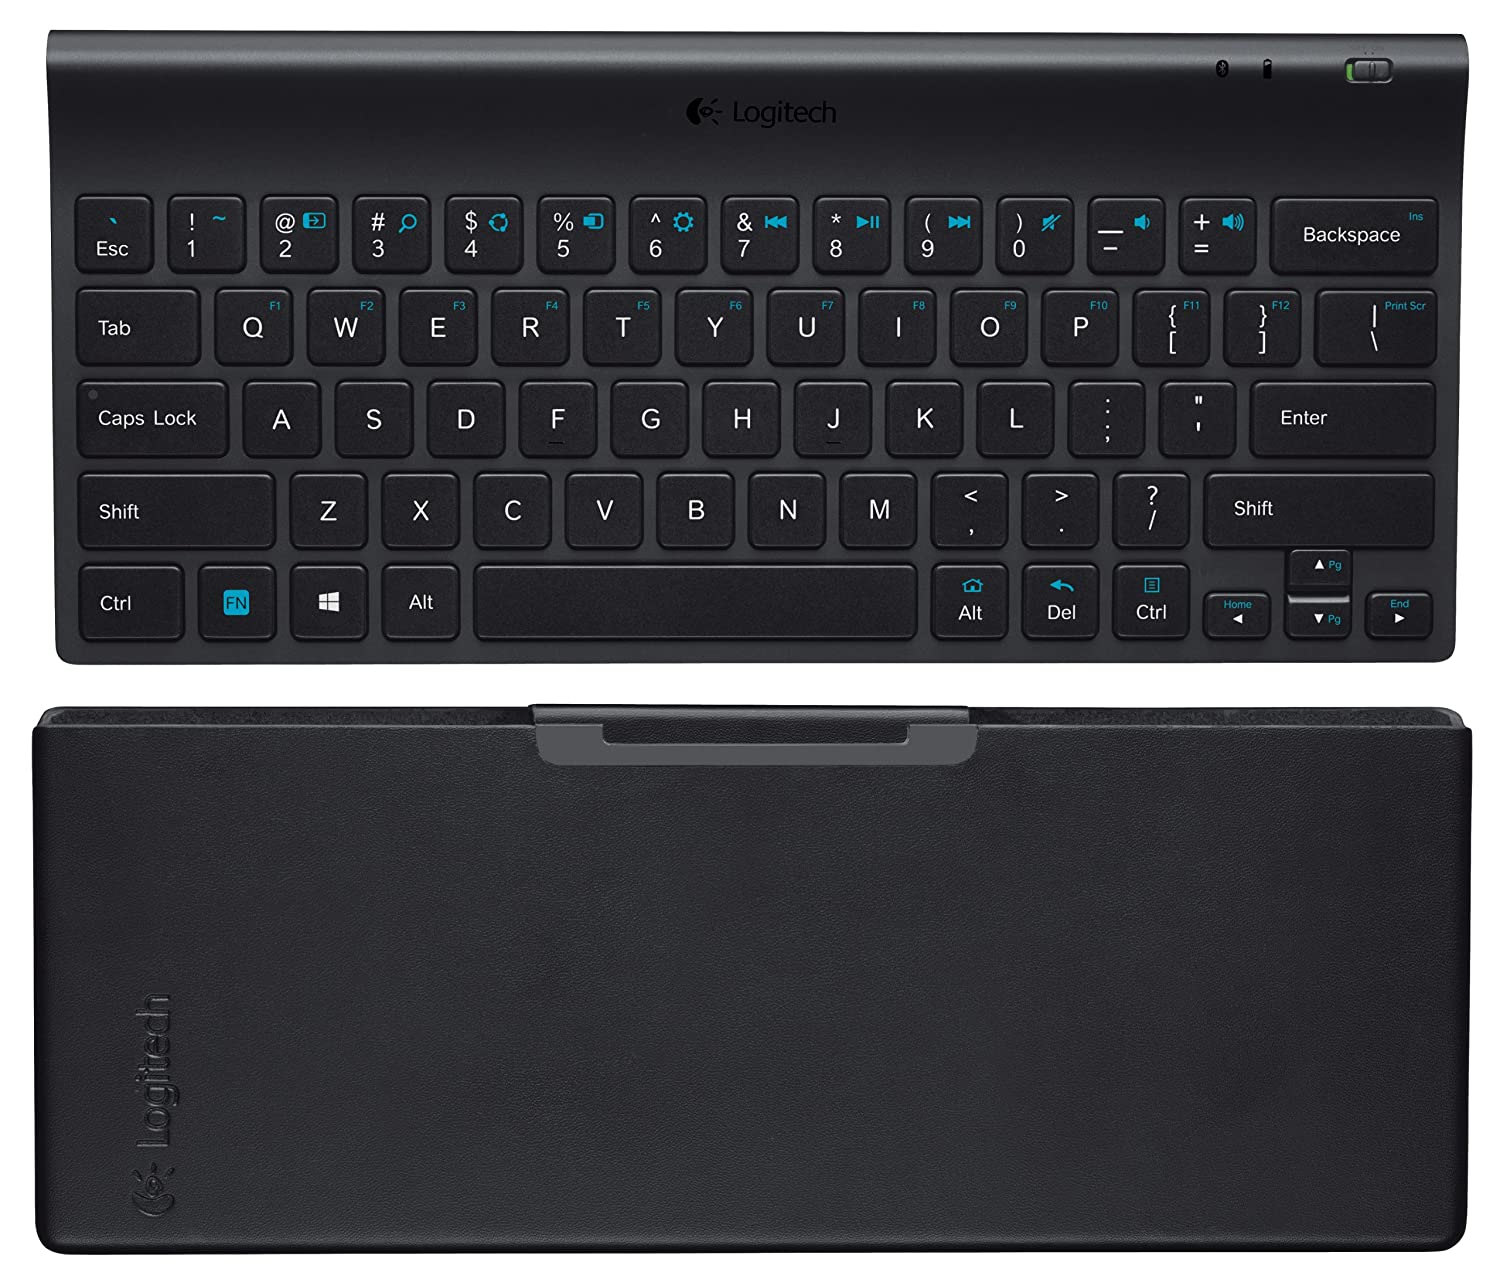 Windows 8 computer - Amazon Com Logitech Tablet Keyboard For Windows 8 Windows Rt And Android3 0 Computers Accessories